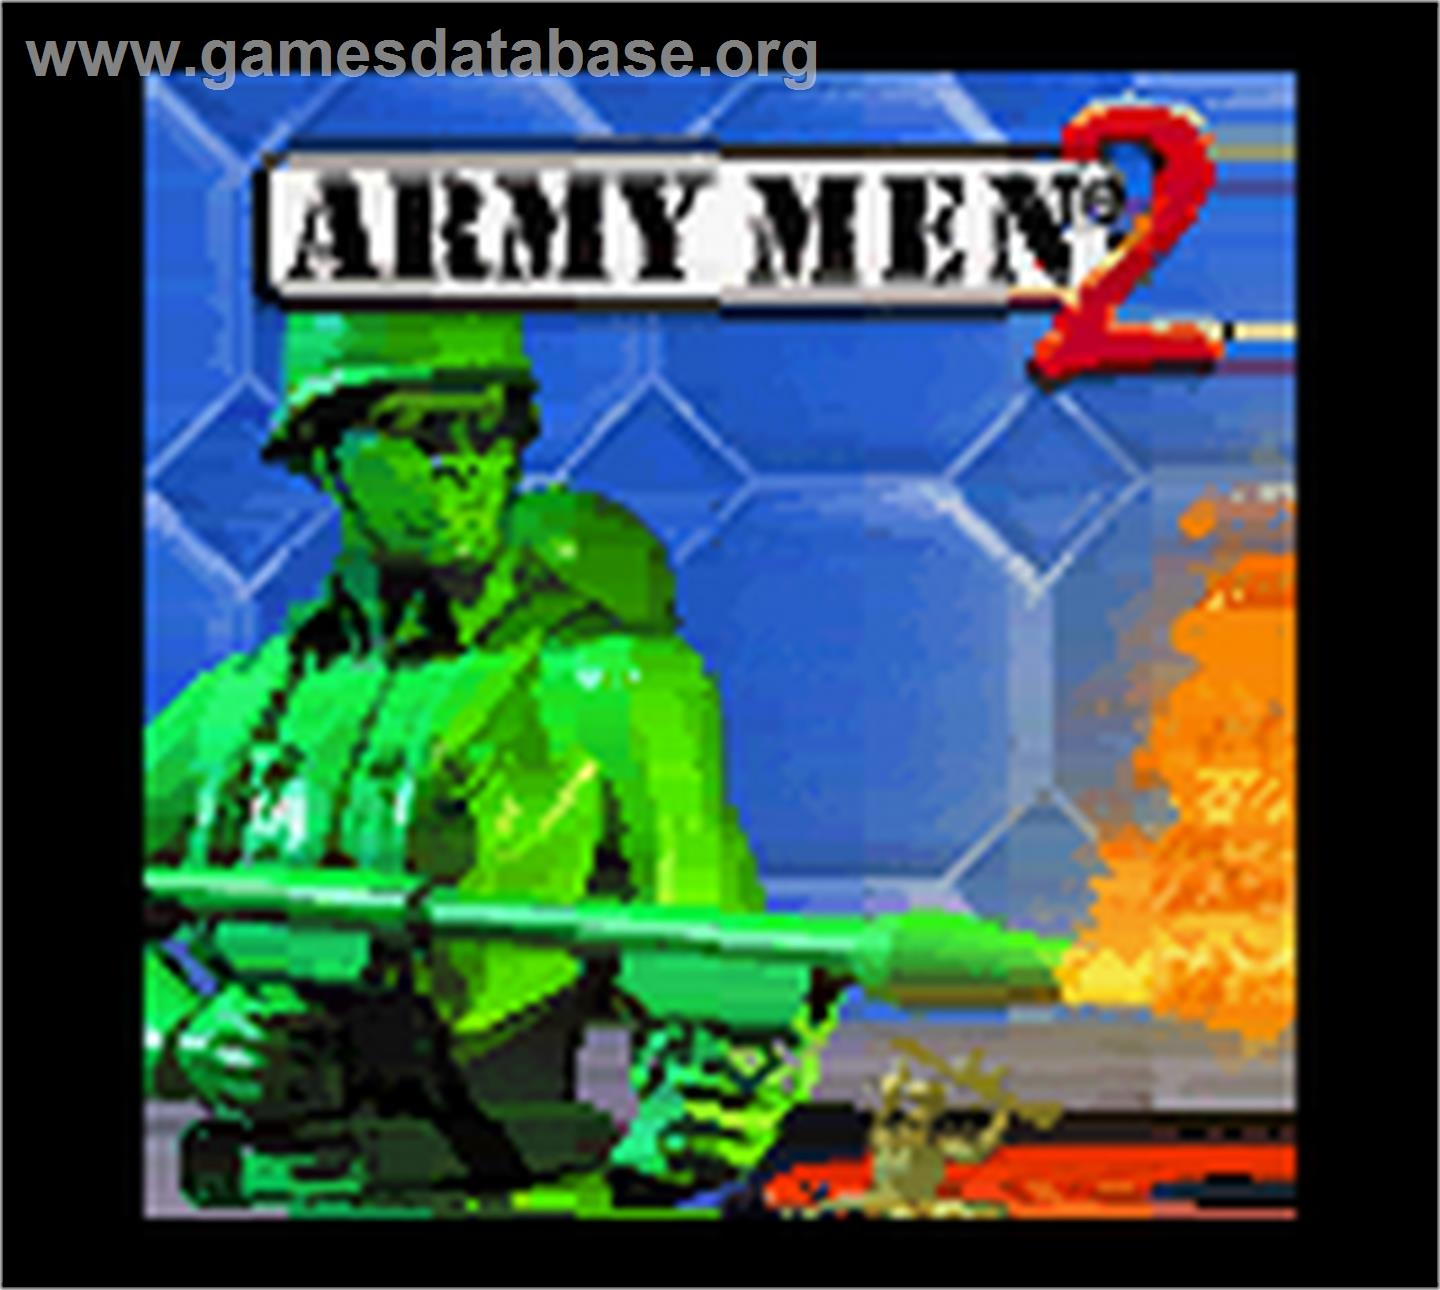 Army Men 2 - Nintendo Game Boy Color - Artwork - Title Screen